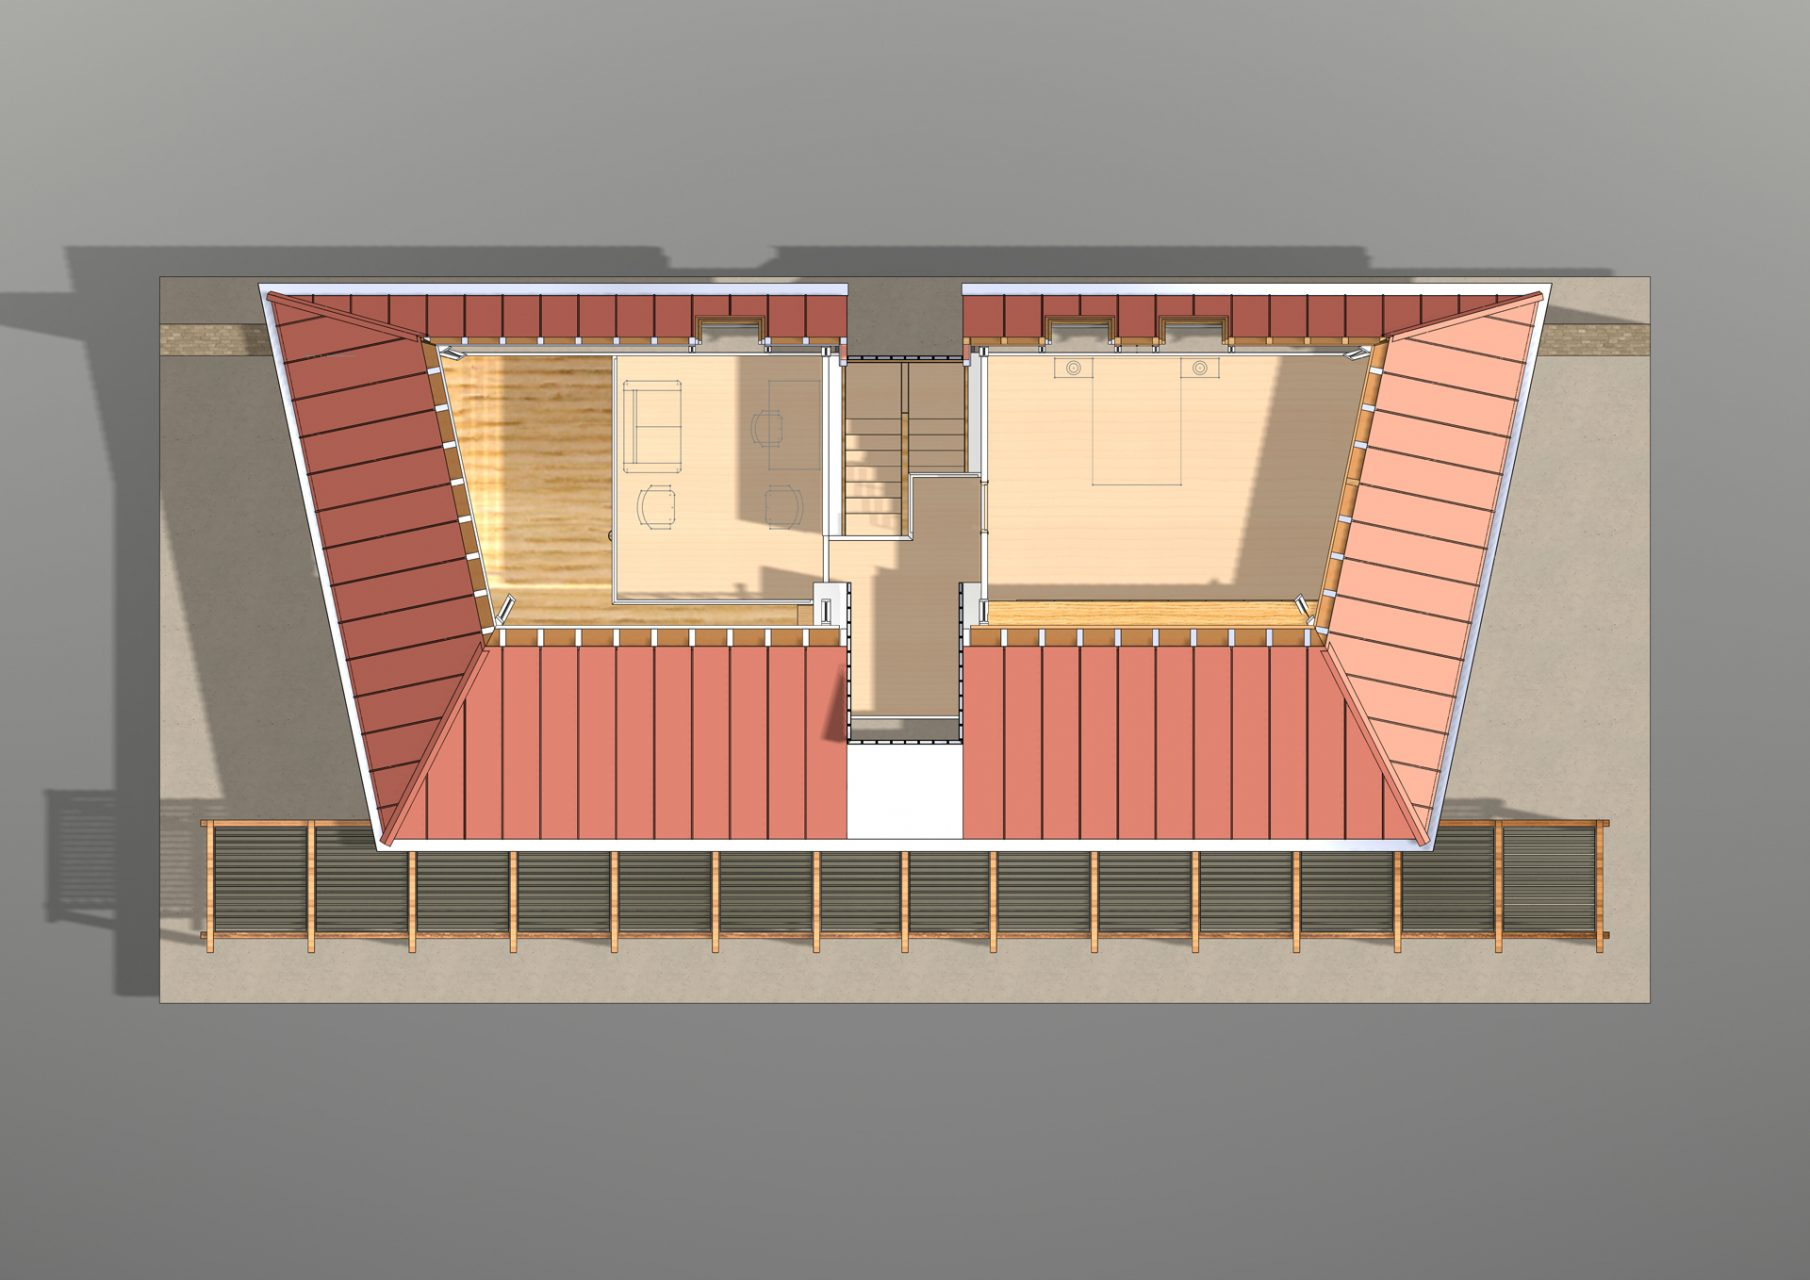 KL HOUSE 13 - plan - first floor - sectioned model with 2d furniture proposal